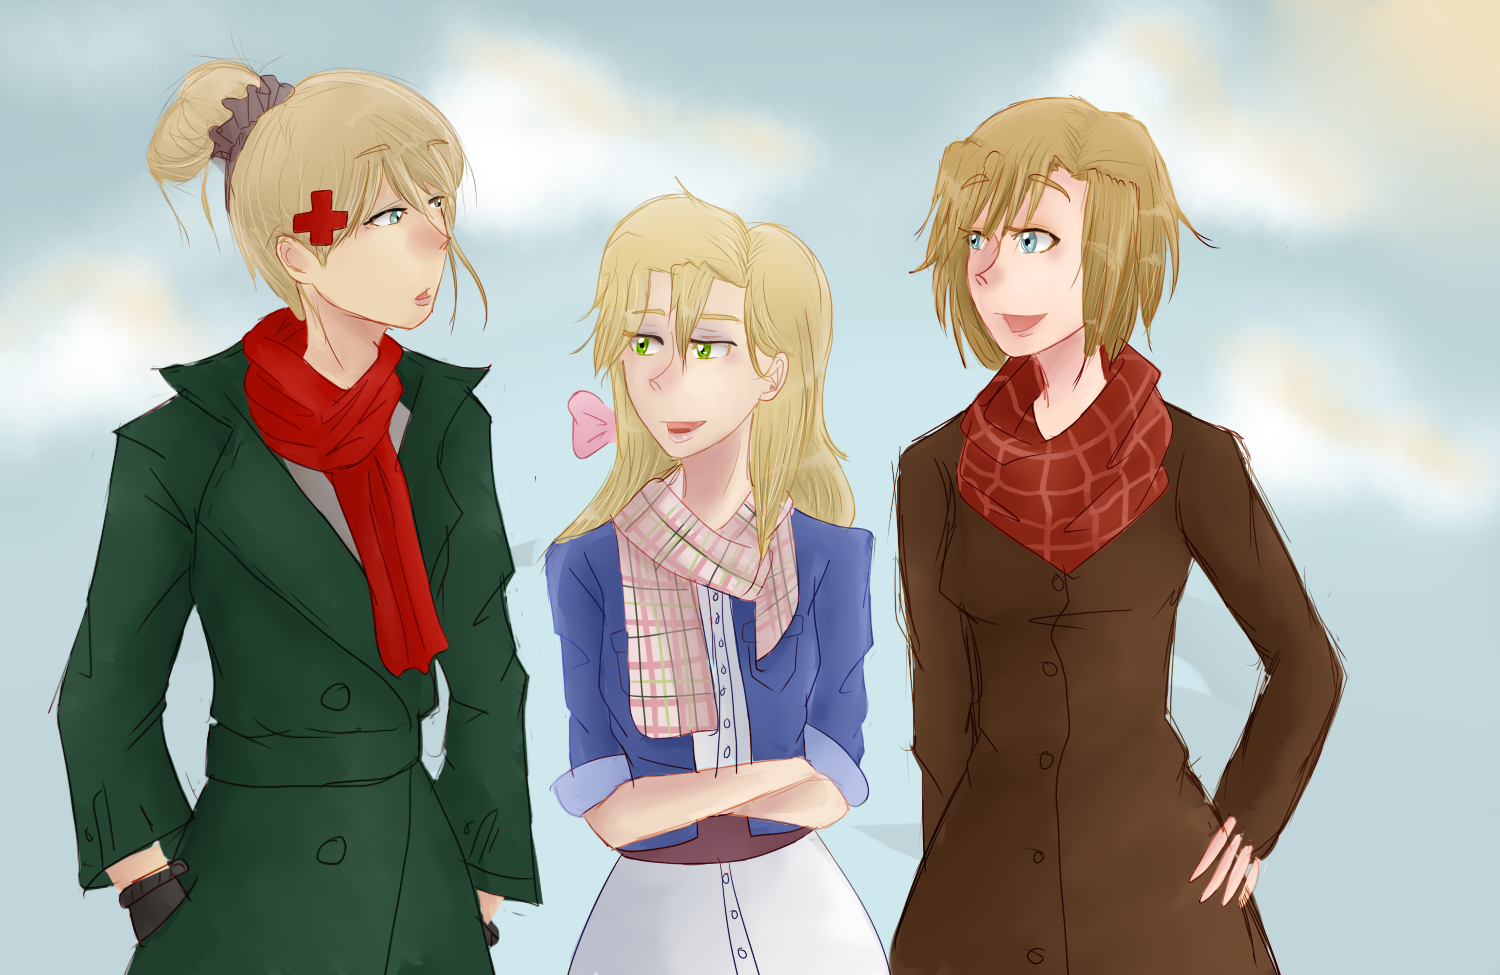 3 Women On A Walk by roppiepop